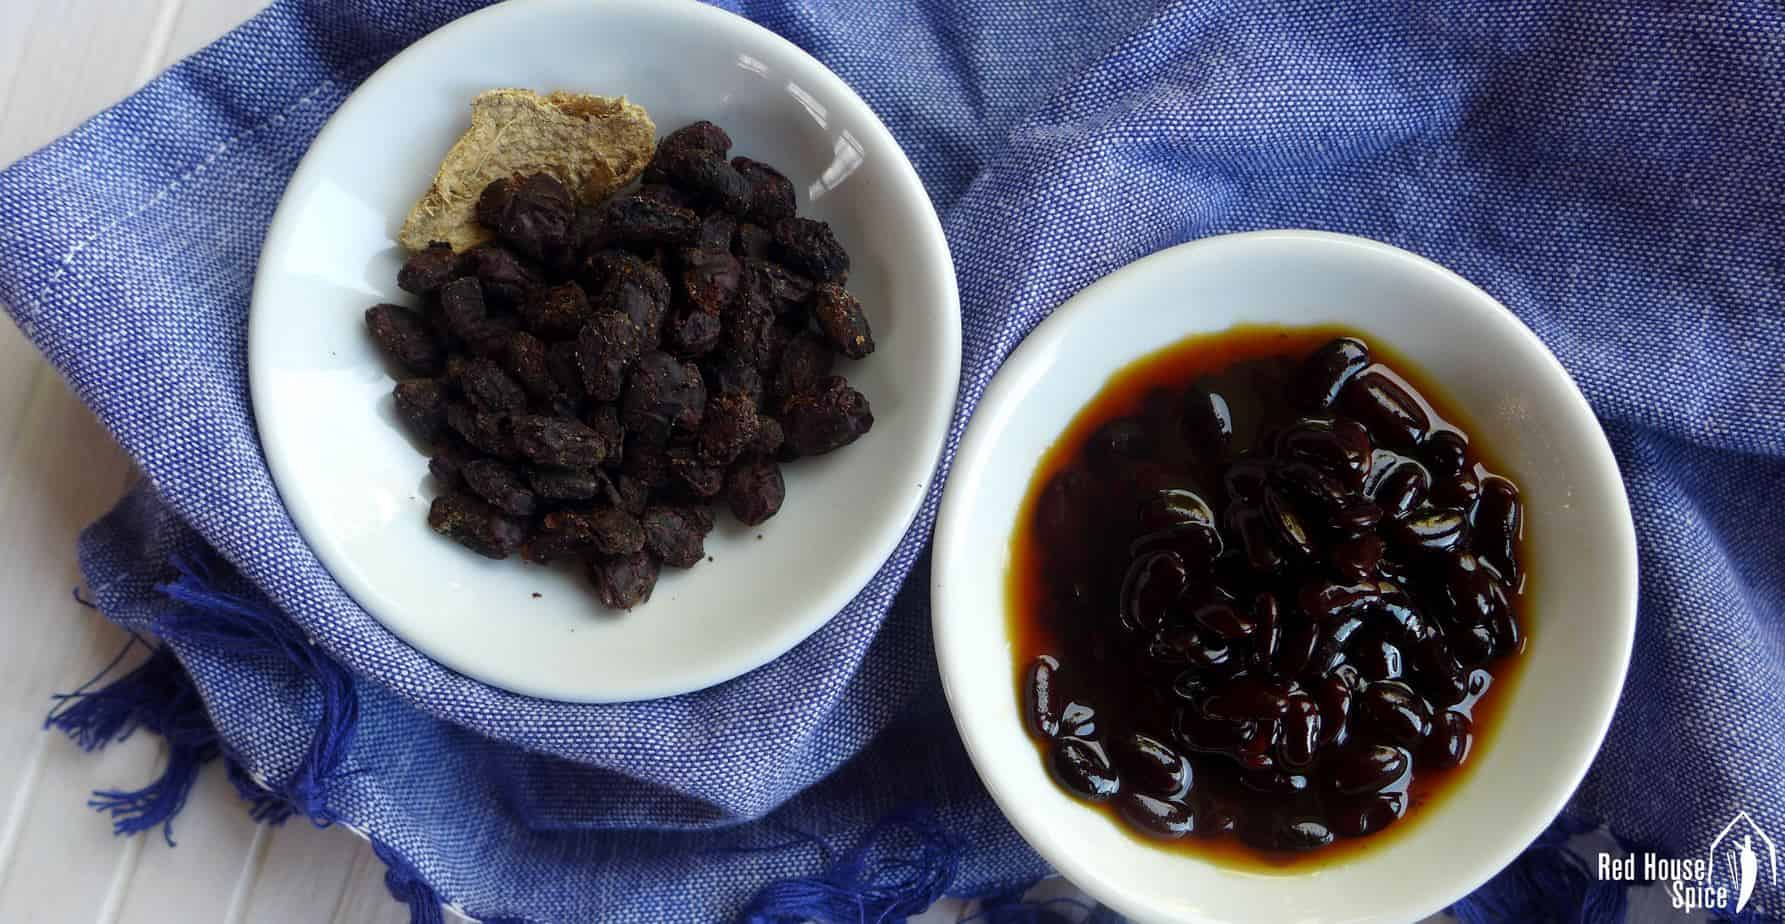 As important as soy sauce, Chinese rice vinegar is a must-have for those keen to explore Chinese cuisine in their own kitchens.